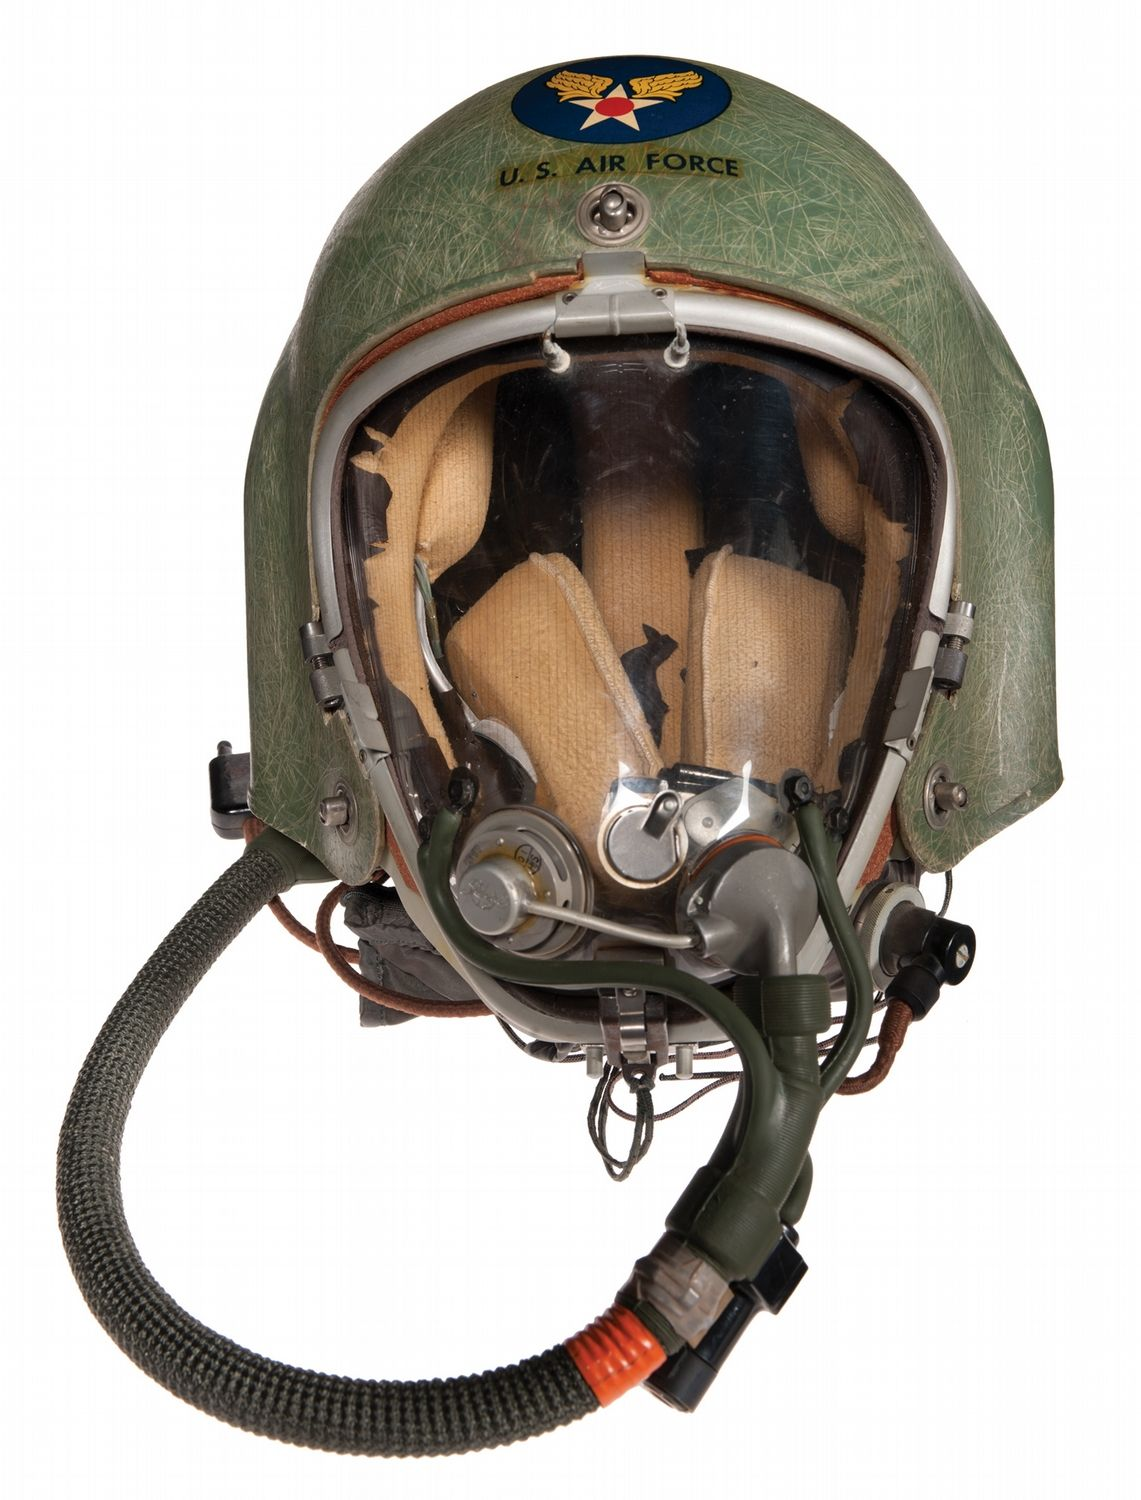 flight helmets usaf 1950s - Google Search